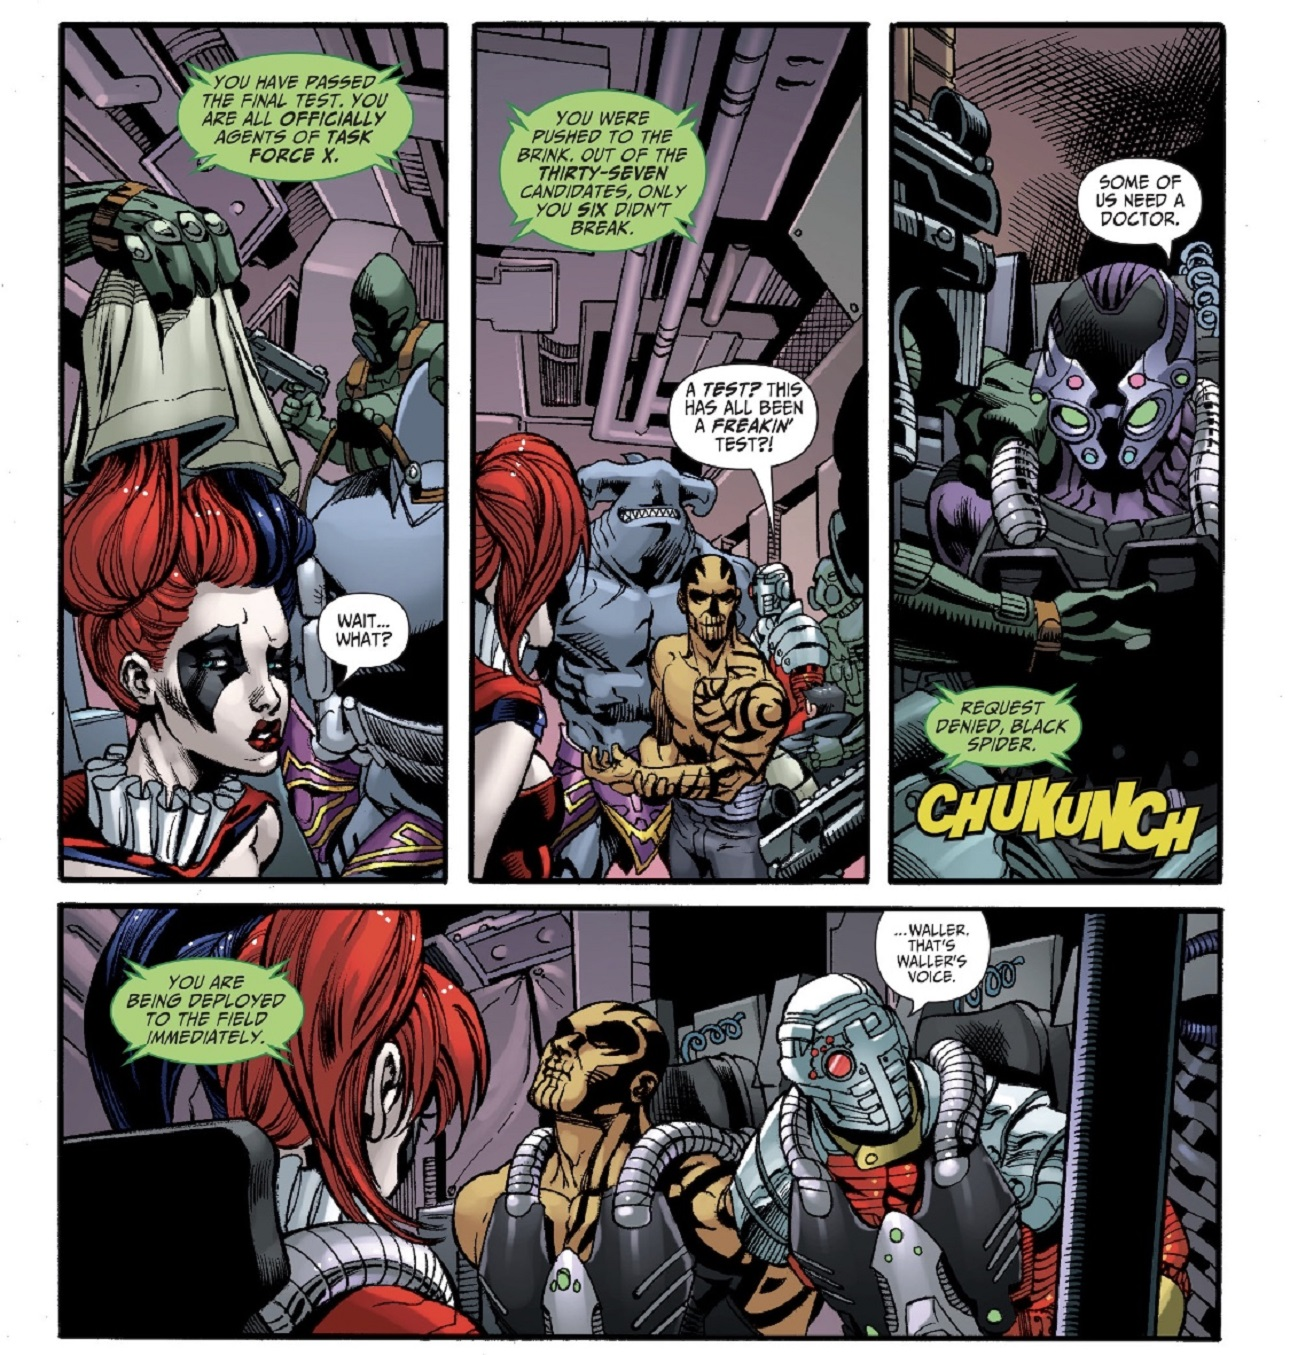 harley-quinn-suicide-squad.jpg